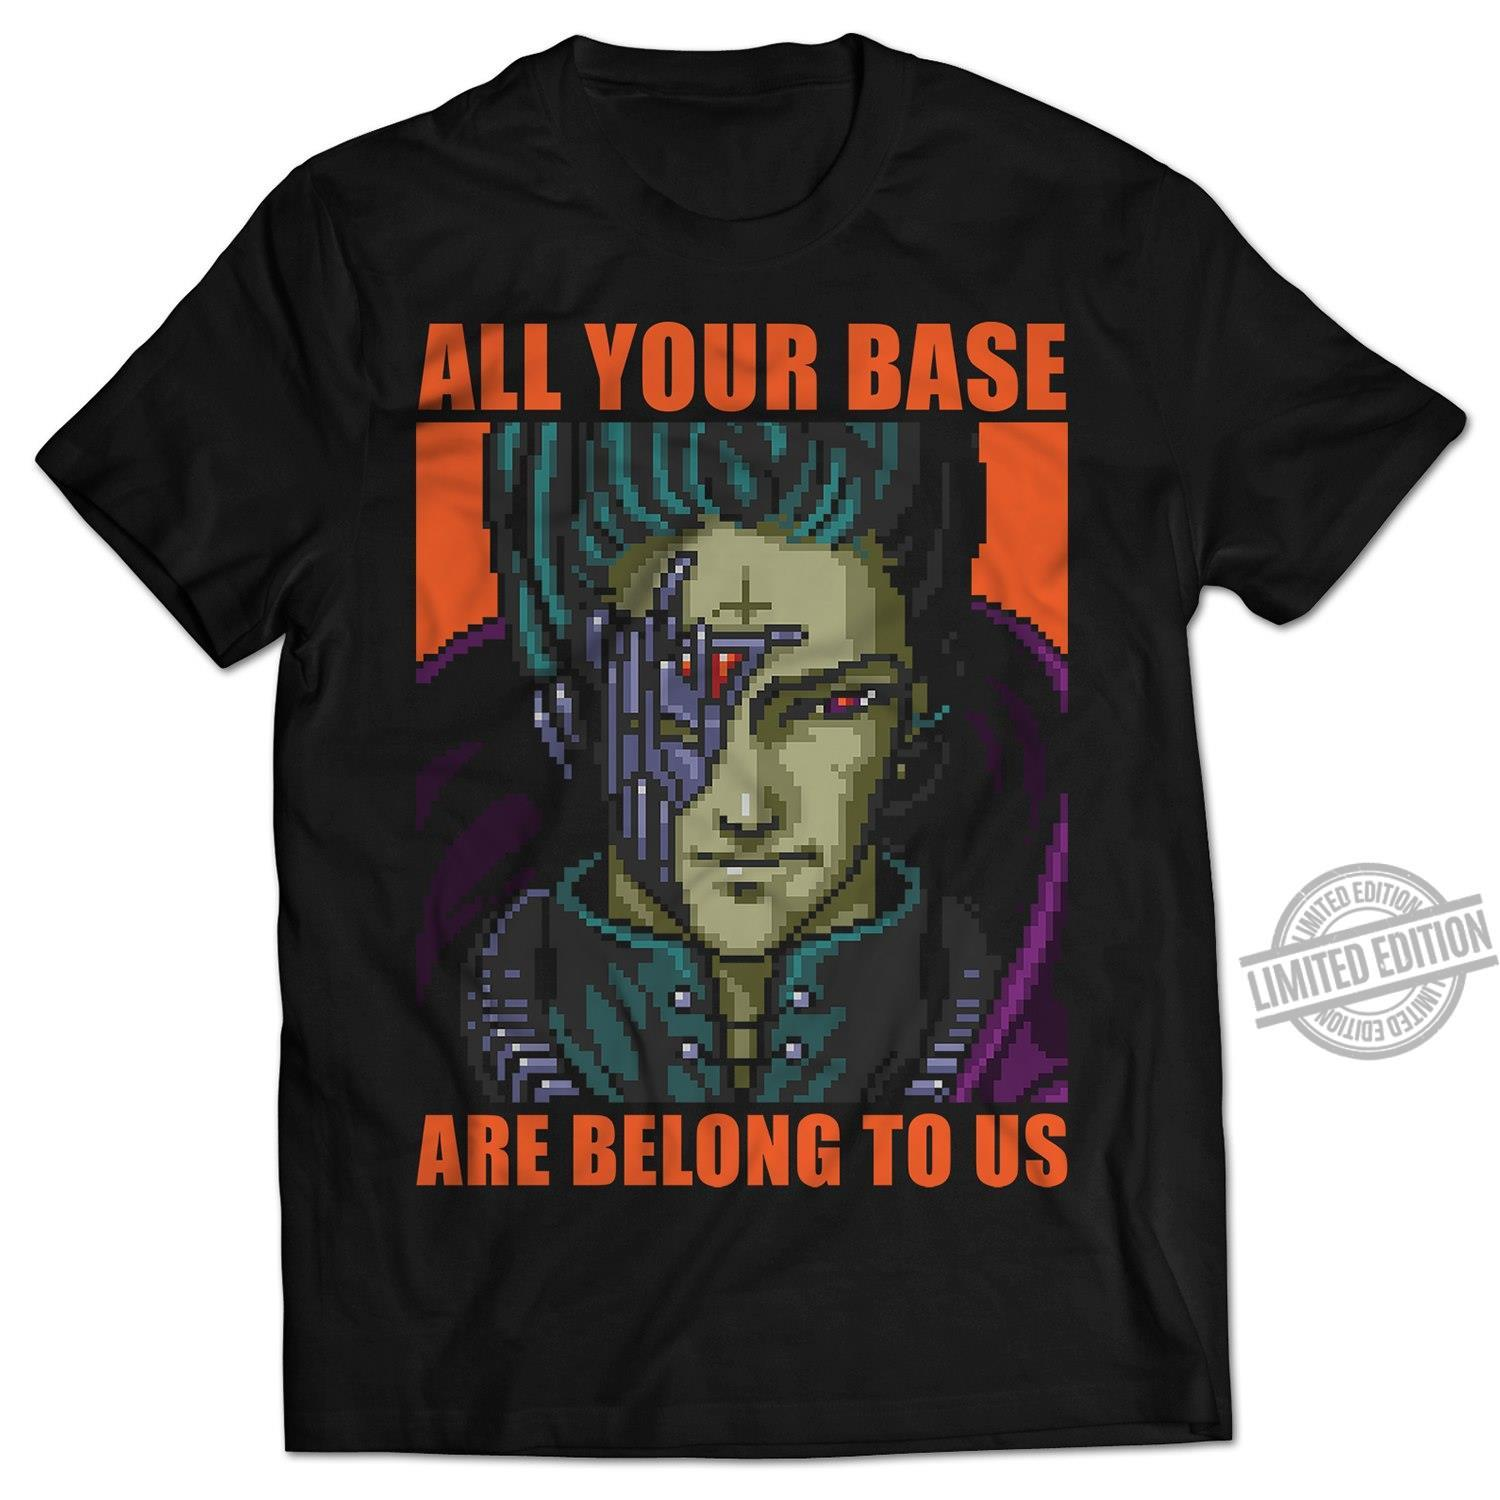 All Your Base Are Belong To Us Shirt